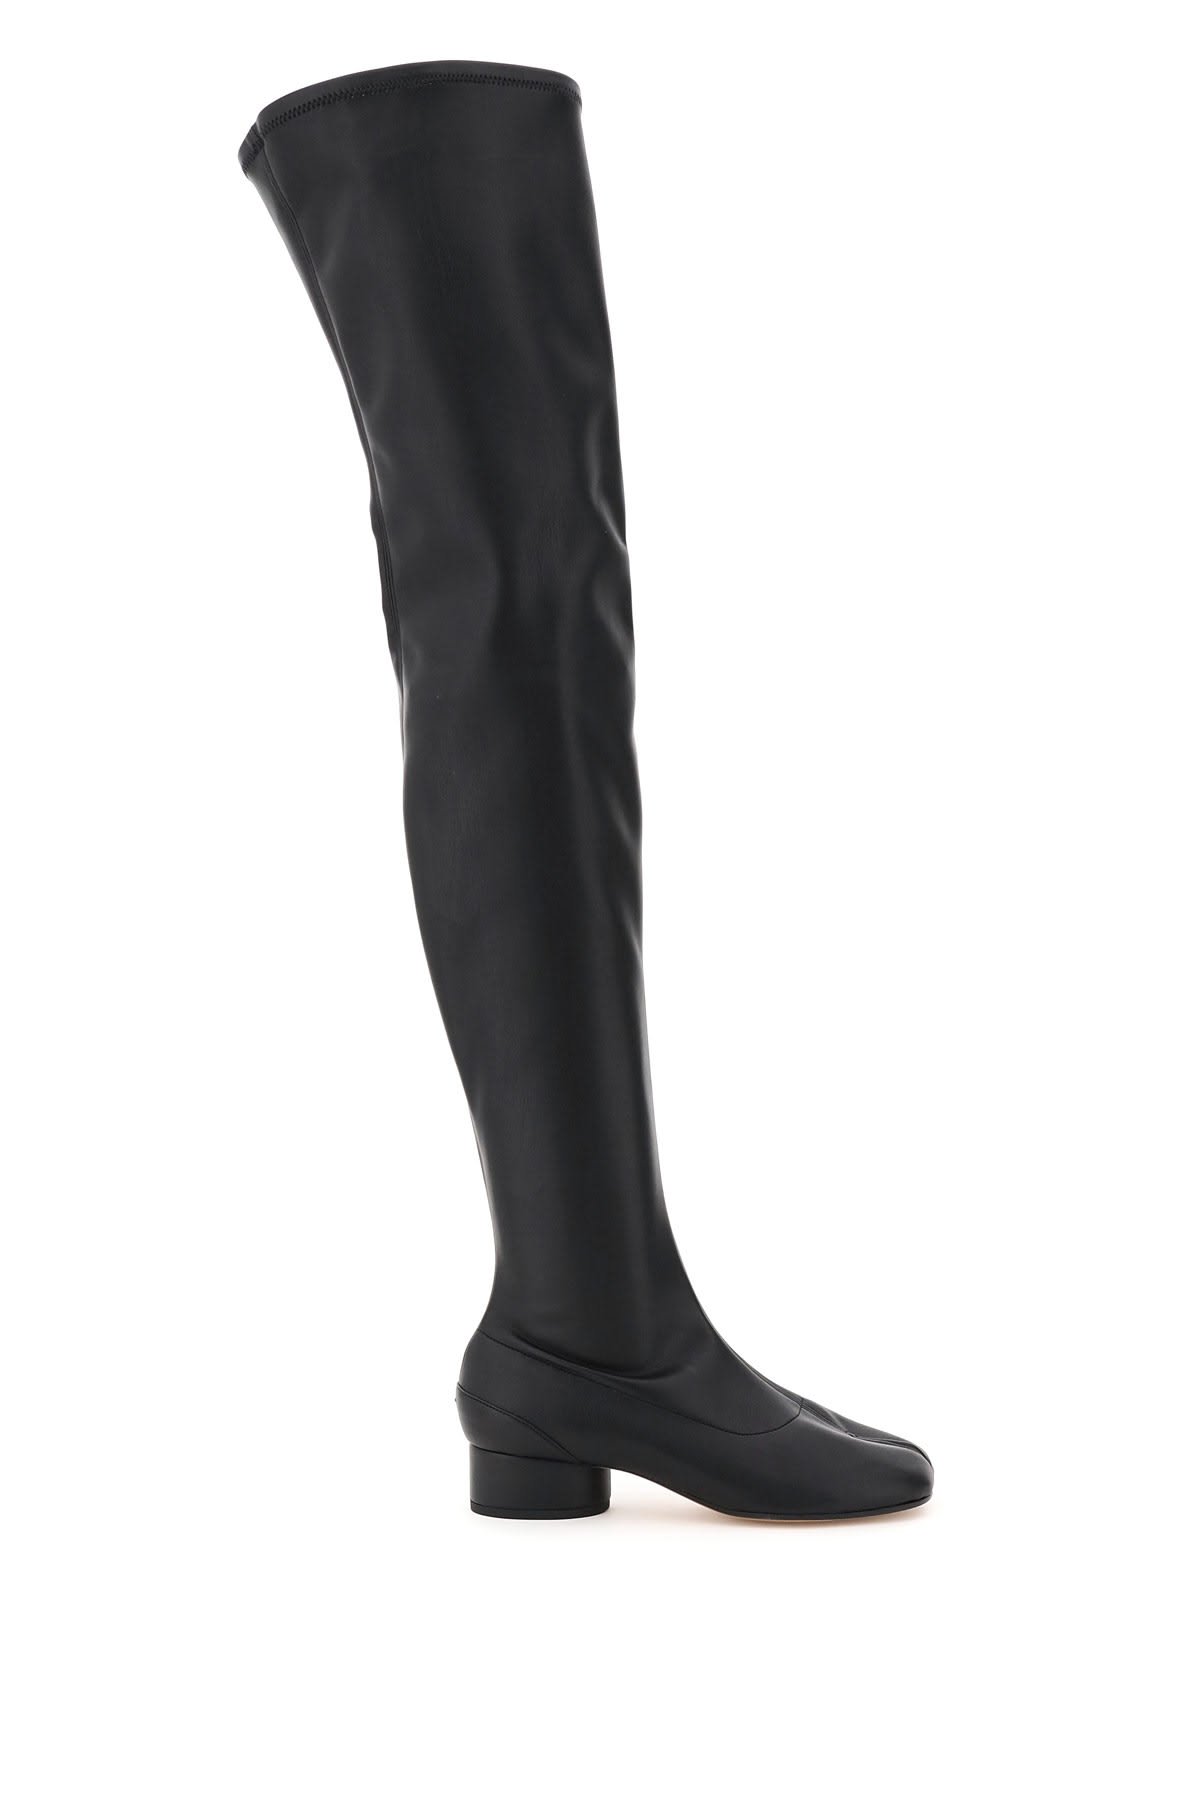 Buy Maison Margiela Over The Knee Tabi Boots online, shop Maison Margiela shoes with free shipping